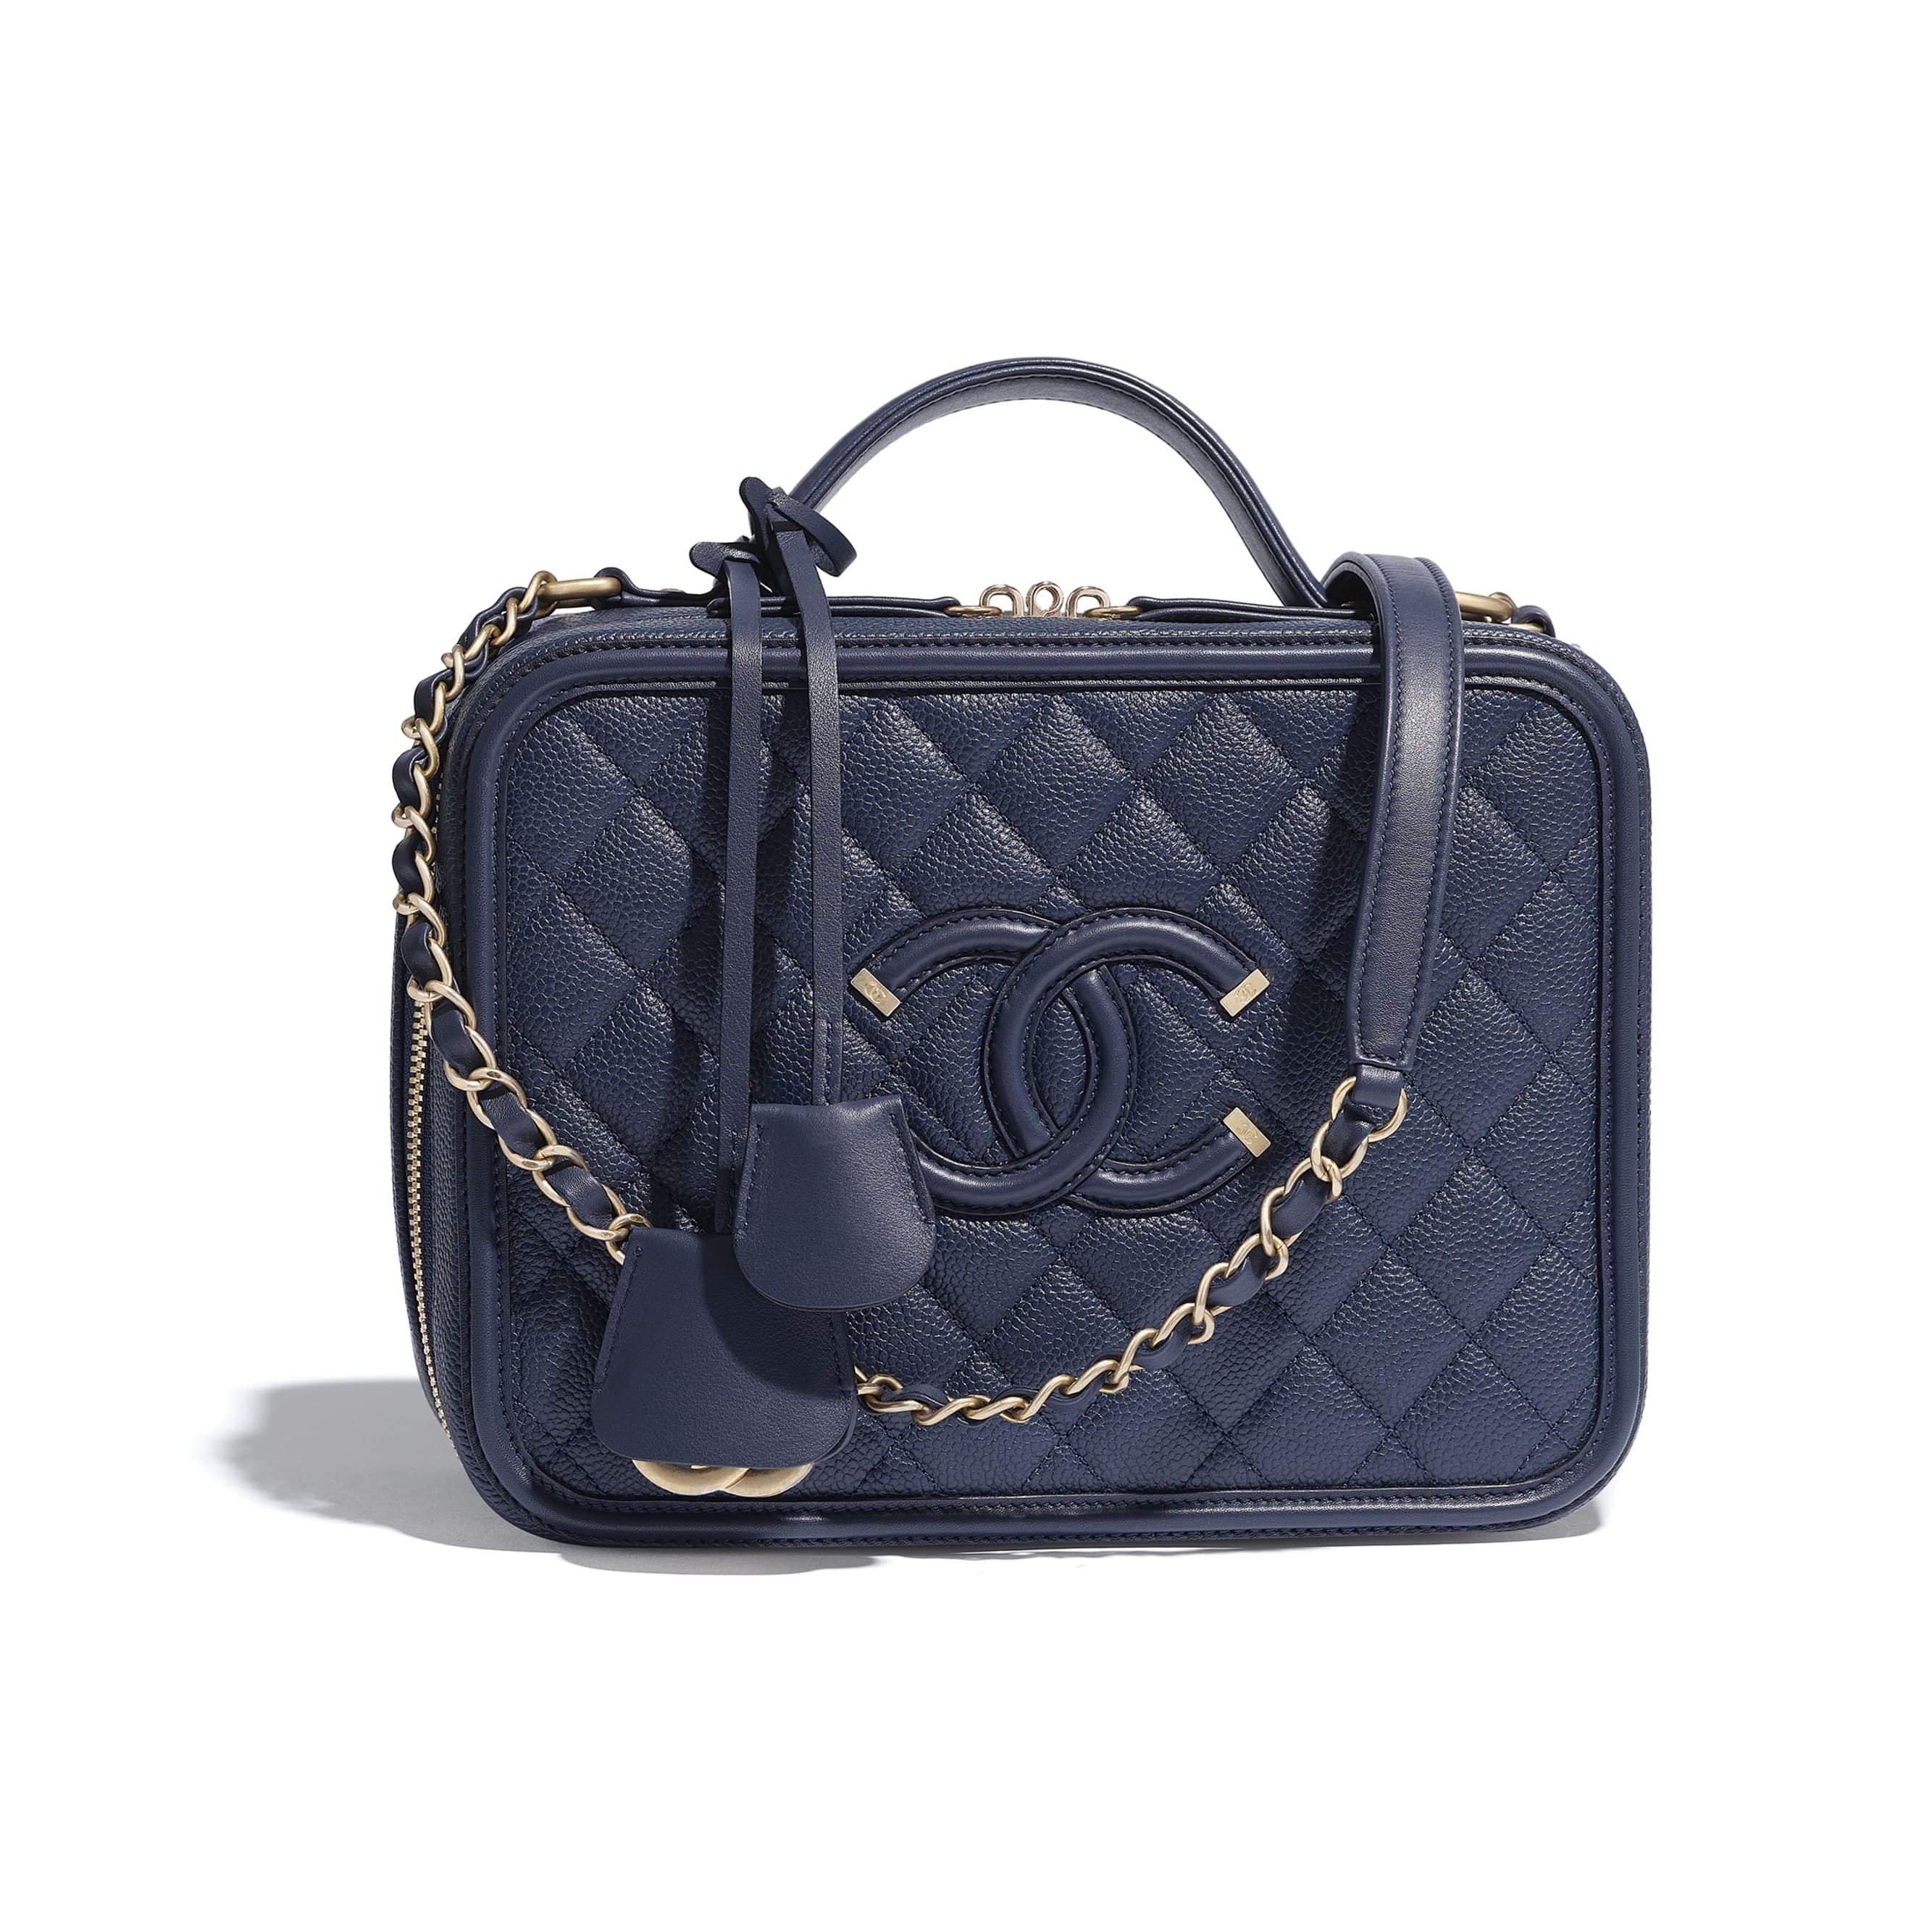 3c6fb4f0c89f Large Vanity Case - Navy Blue - Grained Calfskin, Smooth Calfskin &  Gold-Tone Metal - Default view - see standard sized version